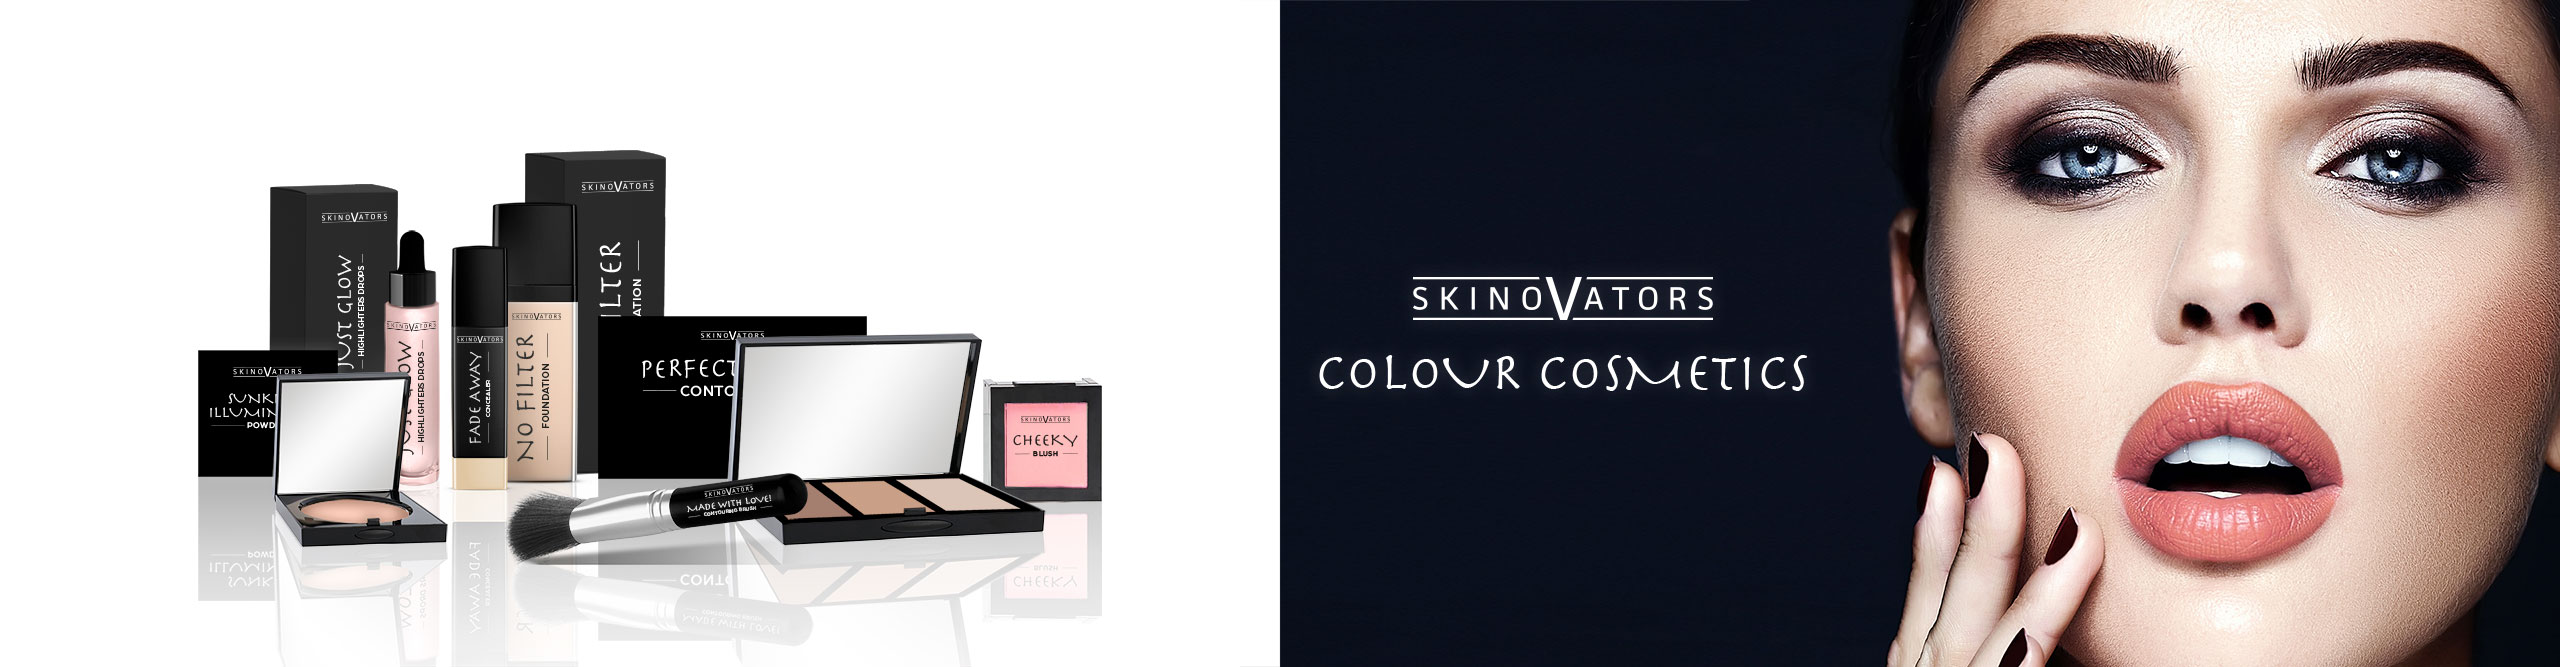 Private label Colour Cosmetics: Powder, Make-up foundation, blush and beauty tools.